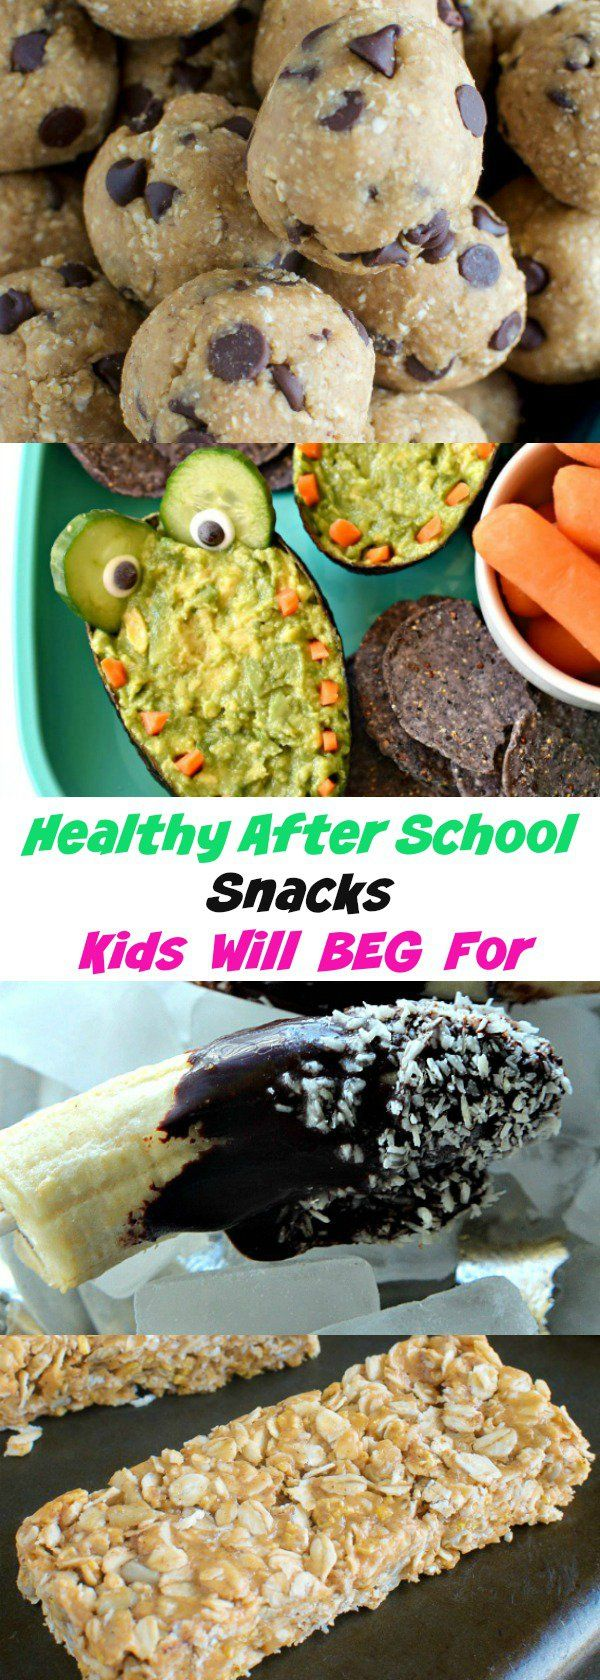 Healthy After School Snacks Kids Will BEG For-2